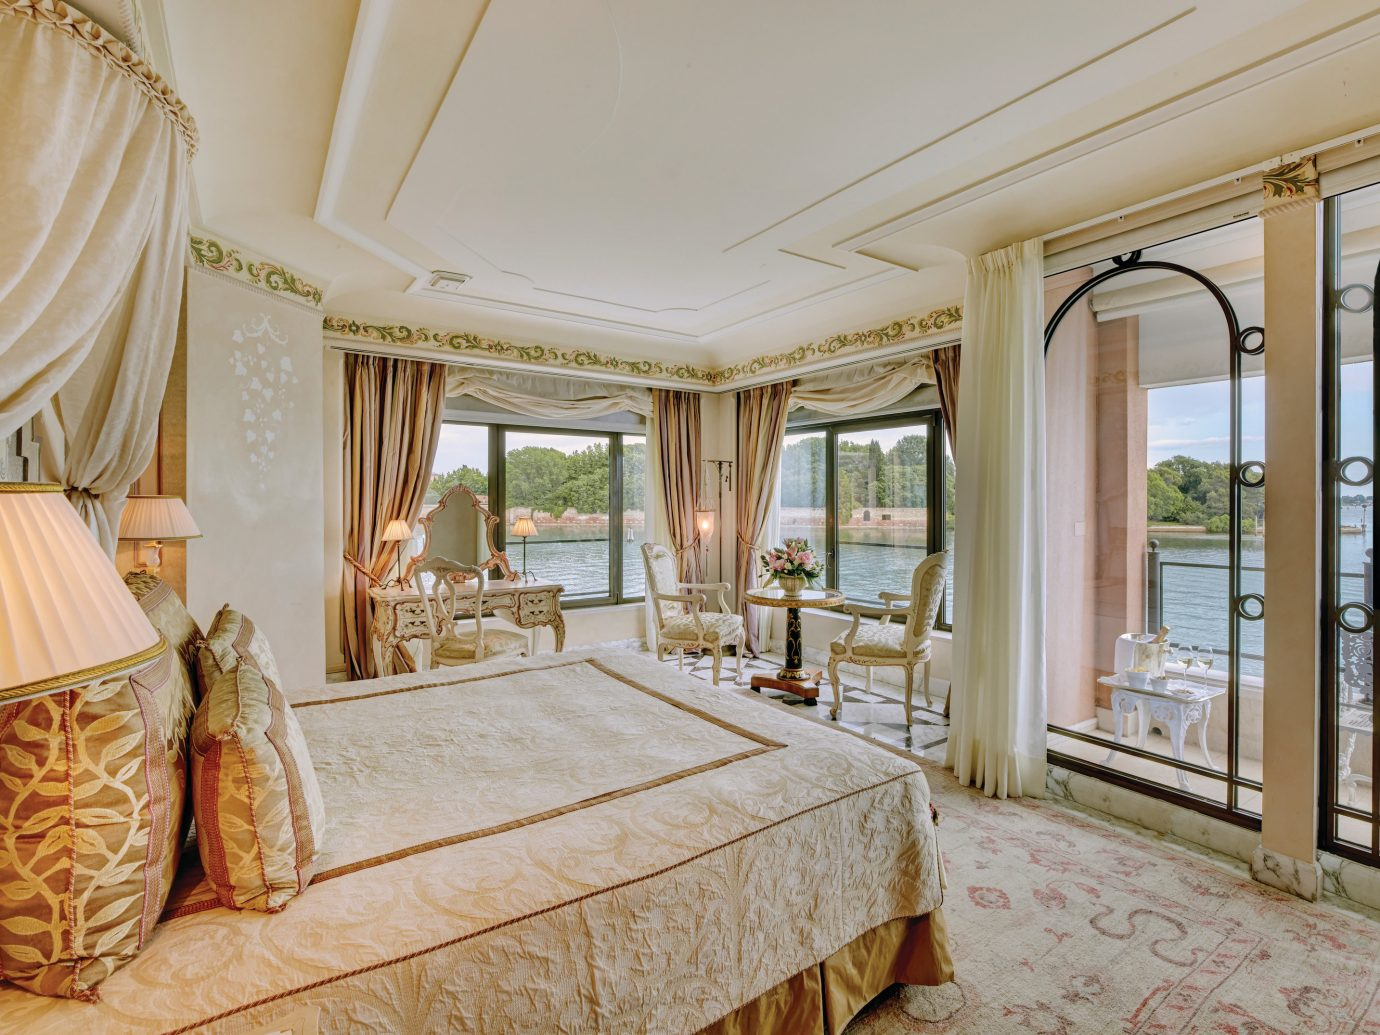 Bedroom at Belmond Hotel Cipriani